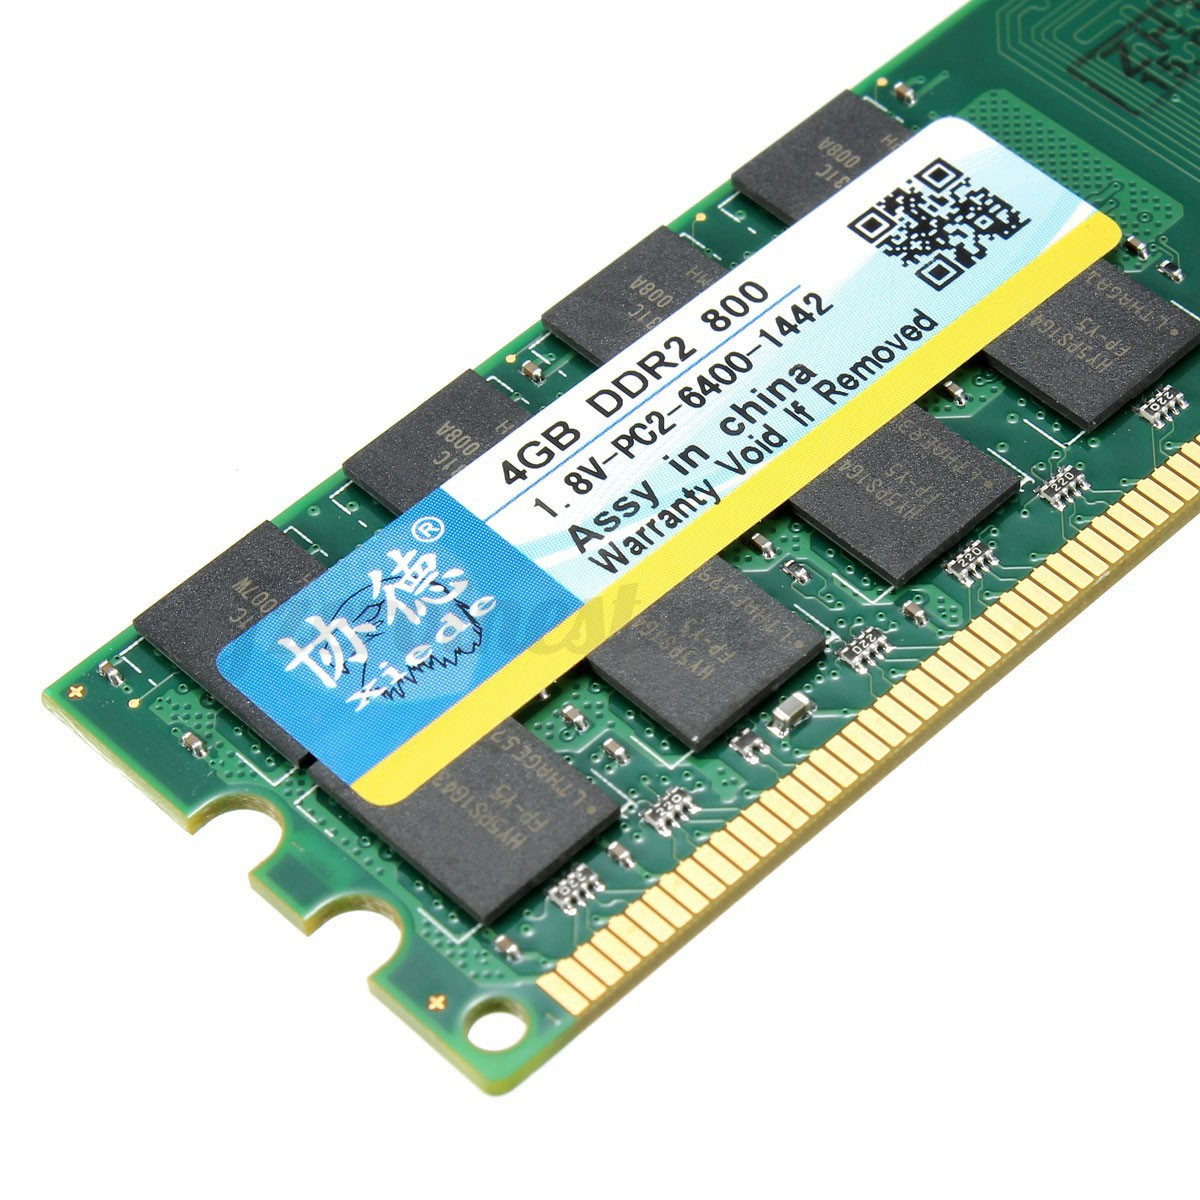 how to know if my ram is ddr2 or ddr3